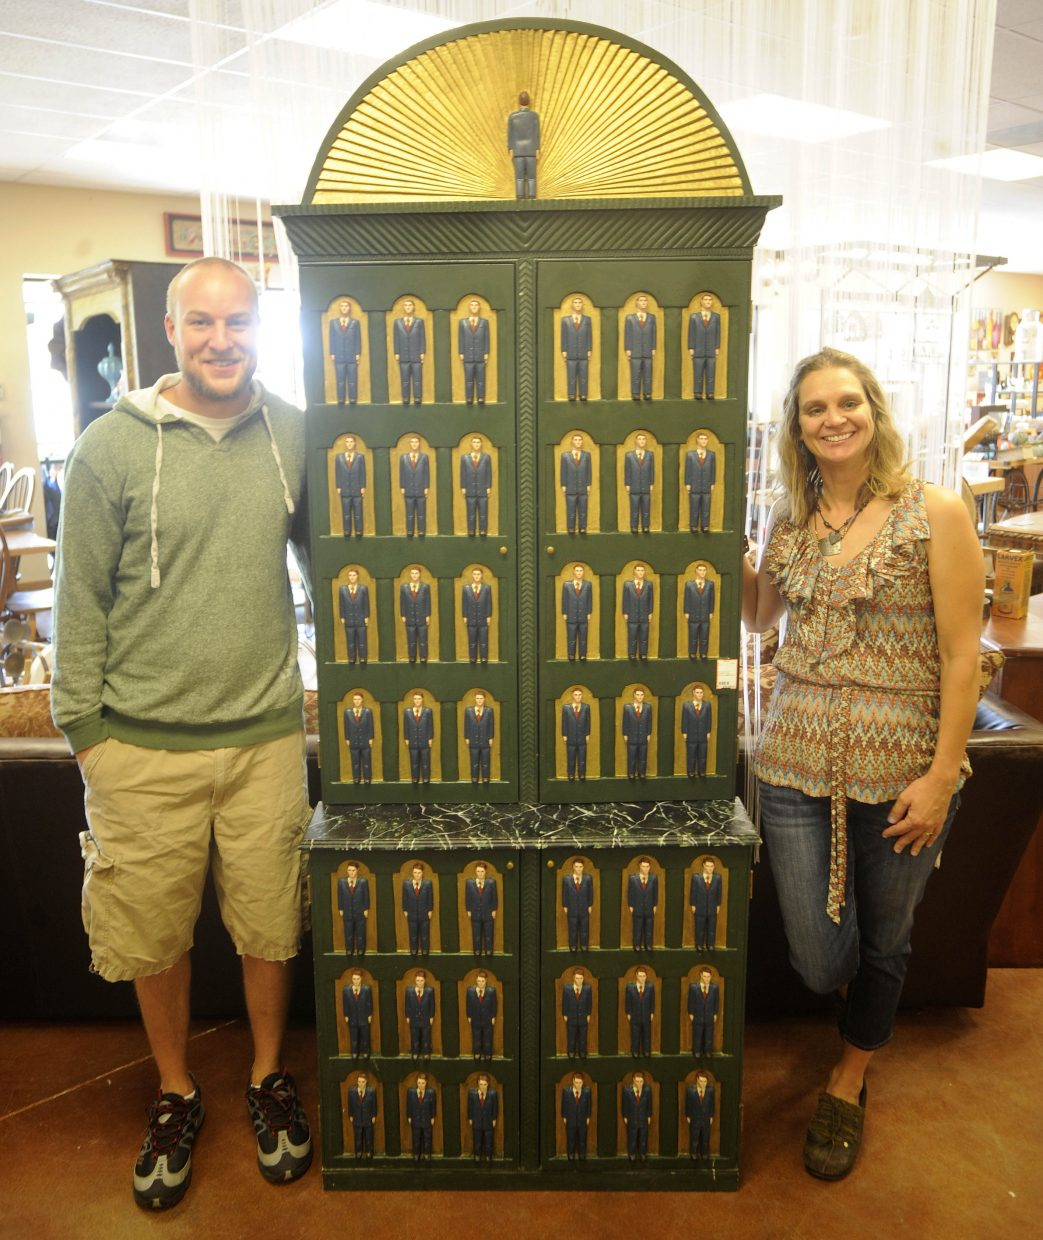 Steamboat Moxie Home Consignments and Design owner Michelle Caragol and employee Bryan Antalek spent weeks researching this cabinet before discovering it was worth $20,000.